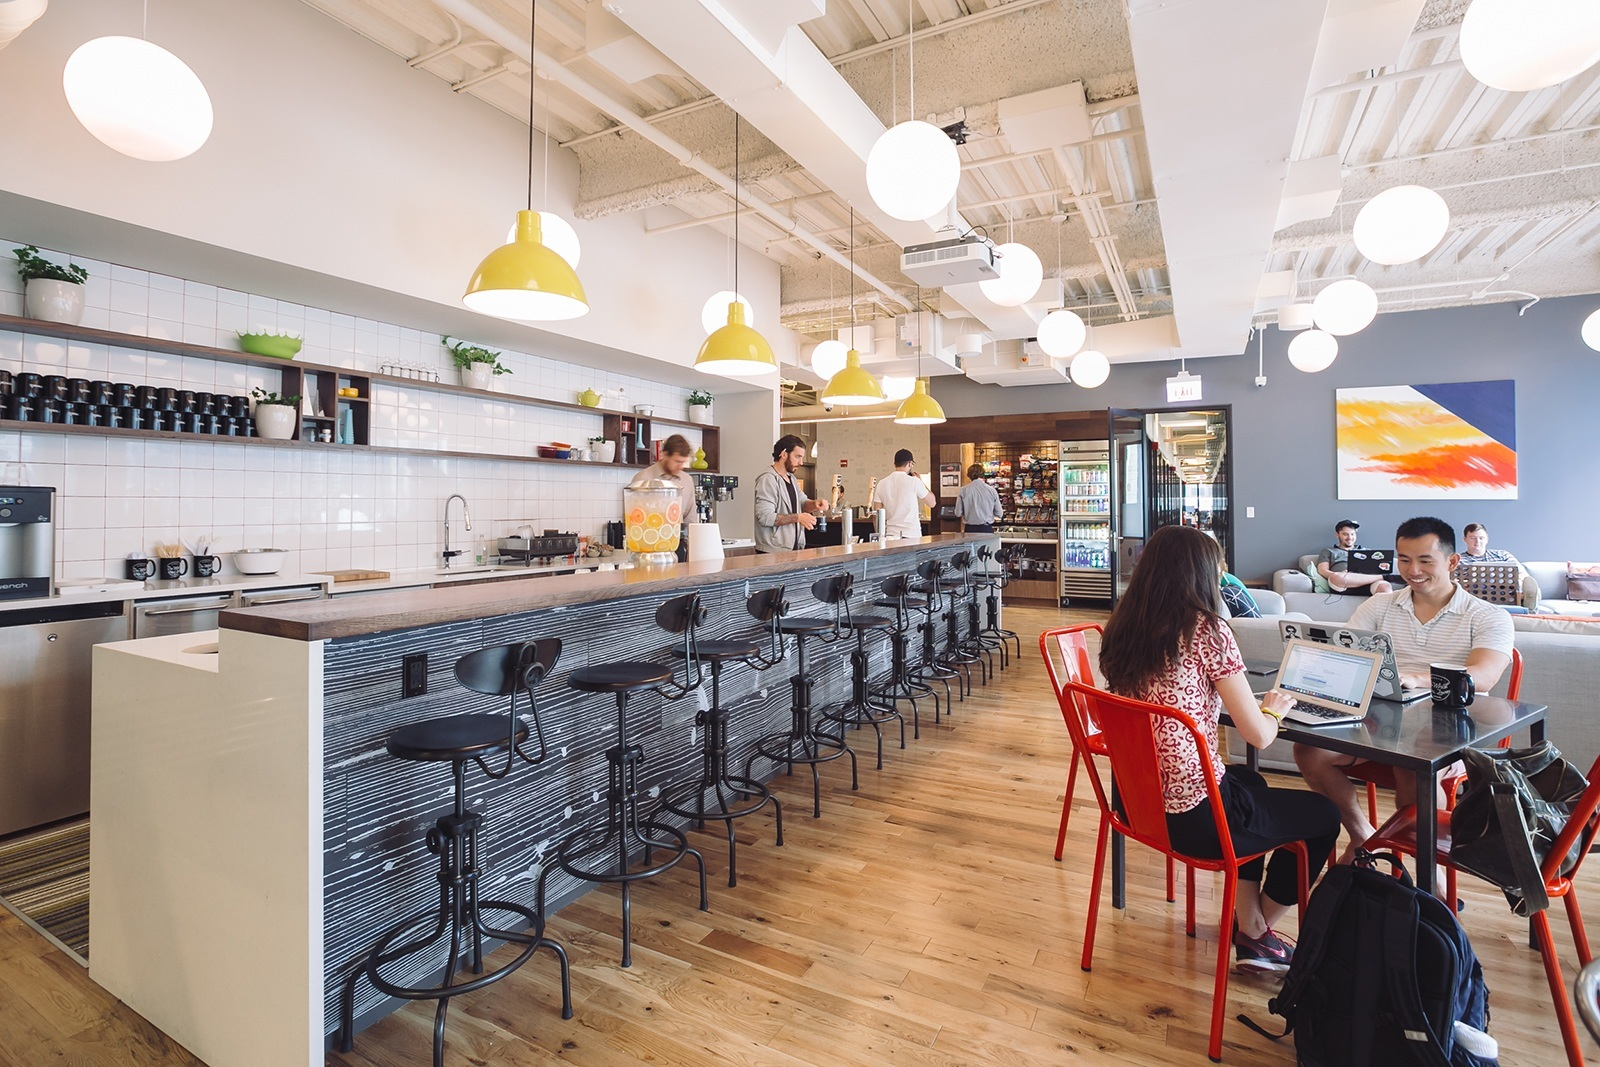 How To Design A New Kitchen Layout A Tour Of Wework S New Chicago Coworking Space Officelovin